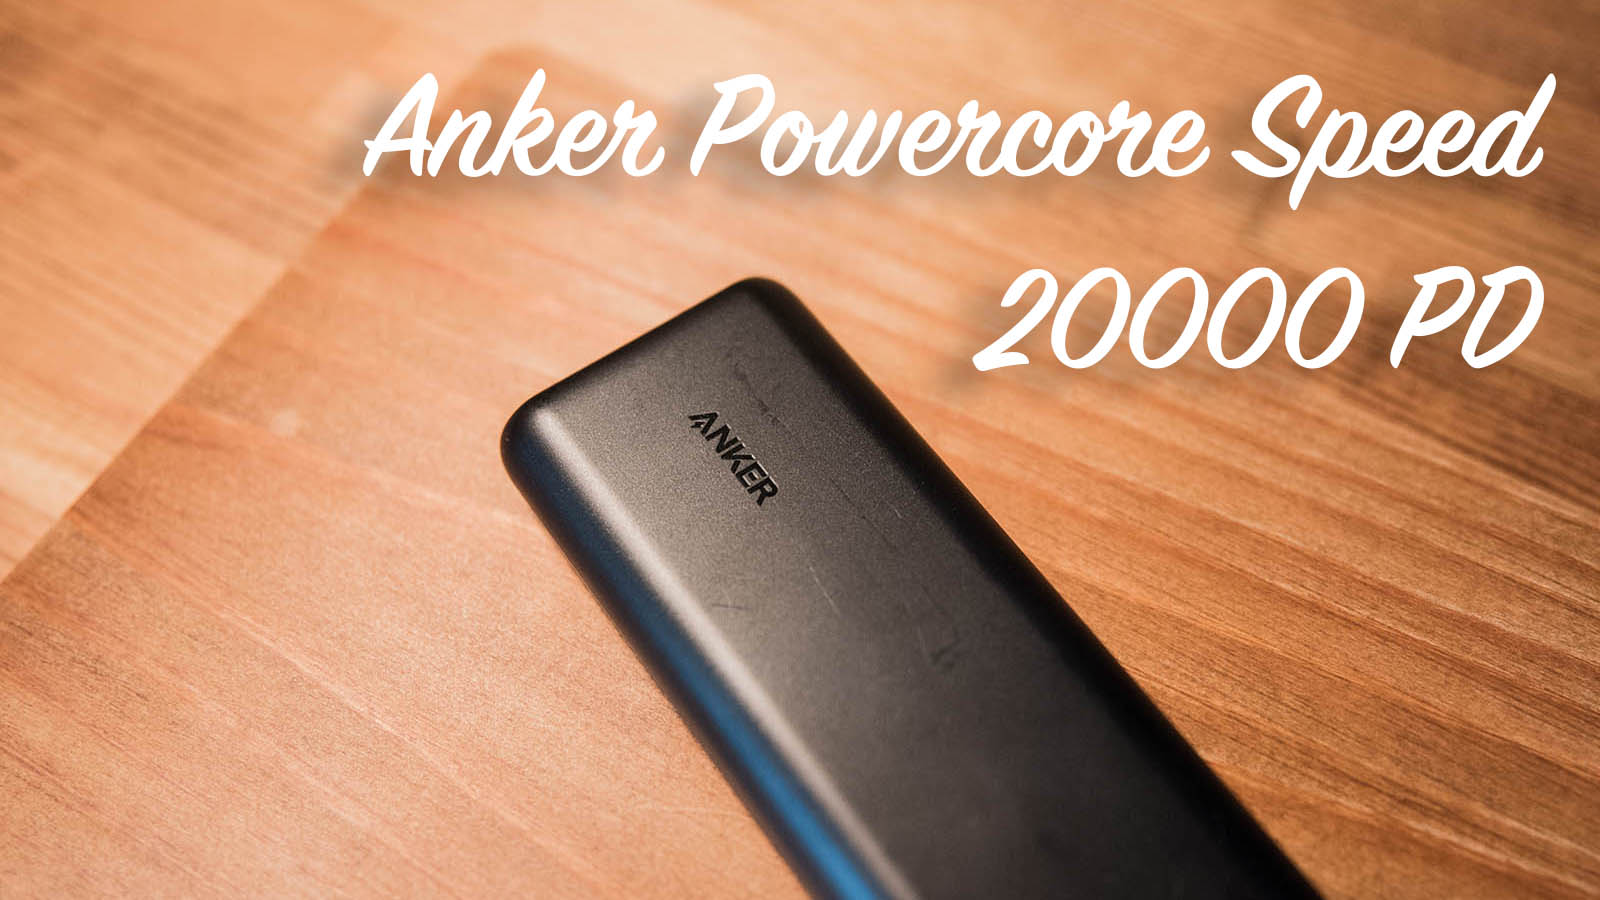 Anker Powercore Speed 20000レビュー